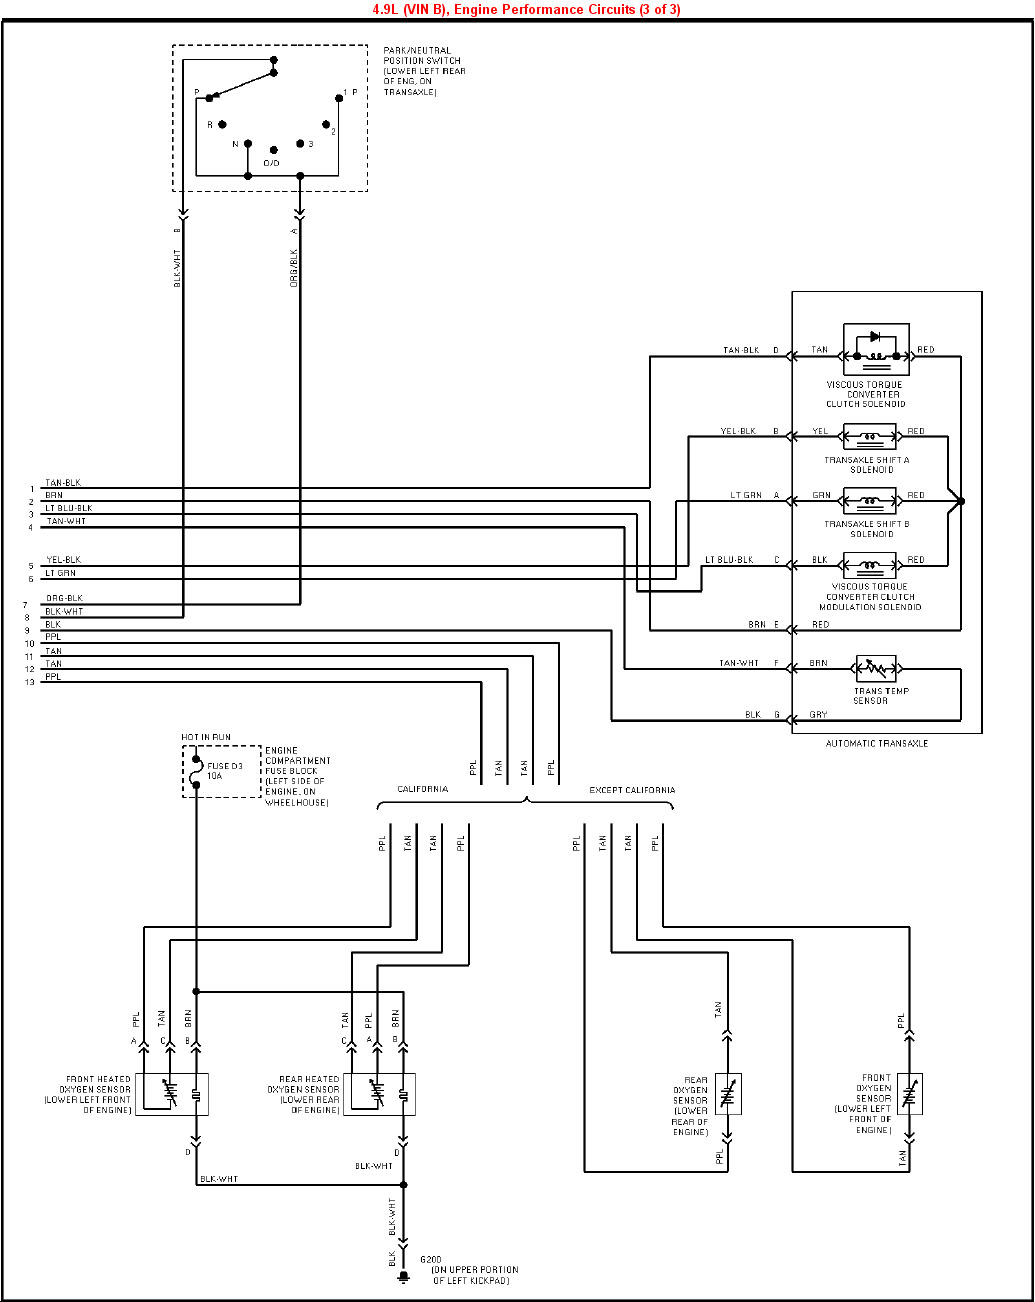 2000 Cadillac Deville Fuse Box Diagram Trusted Wiring Lincoln Town Car Concours And Electrical System Diagnostic Test